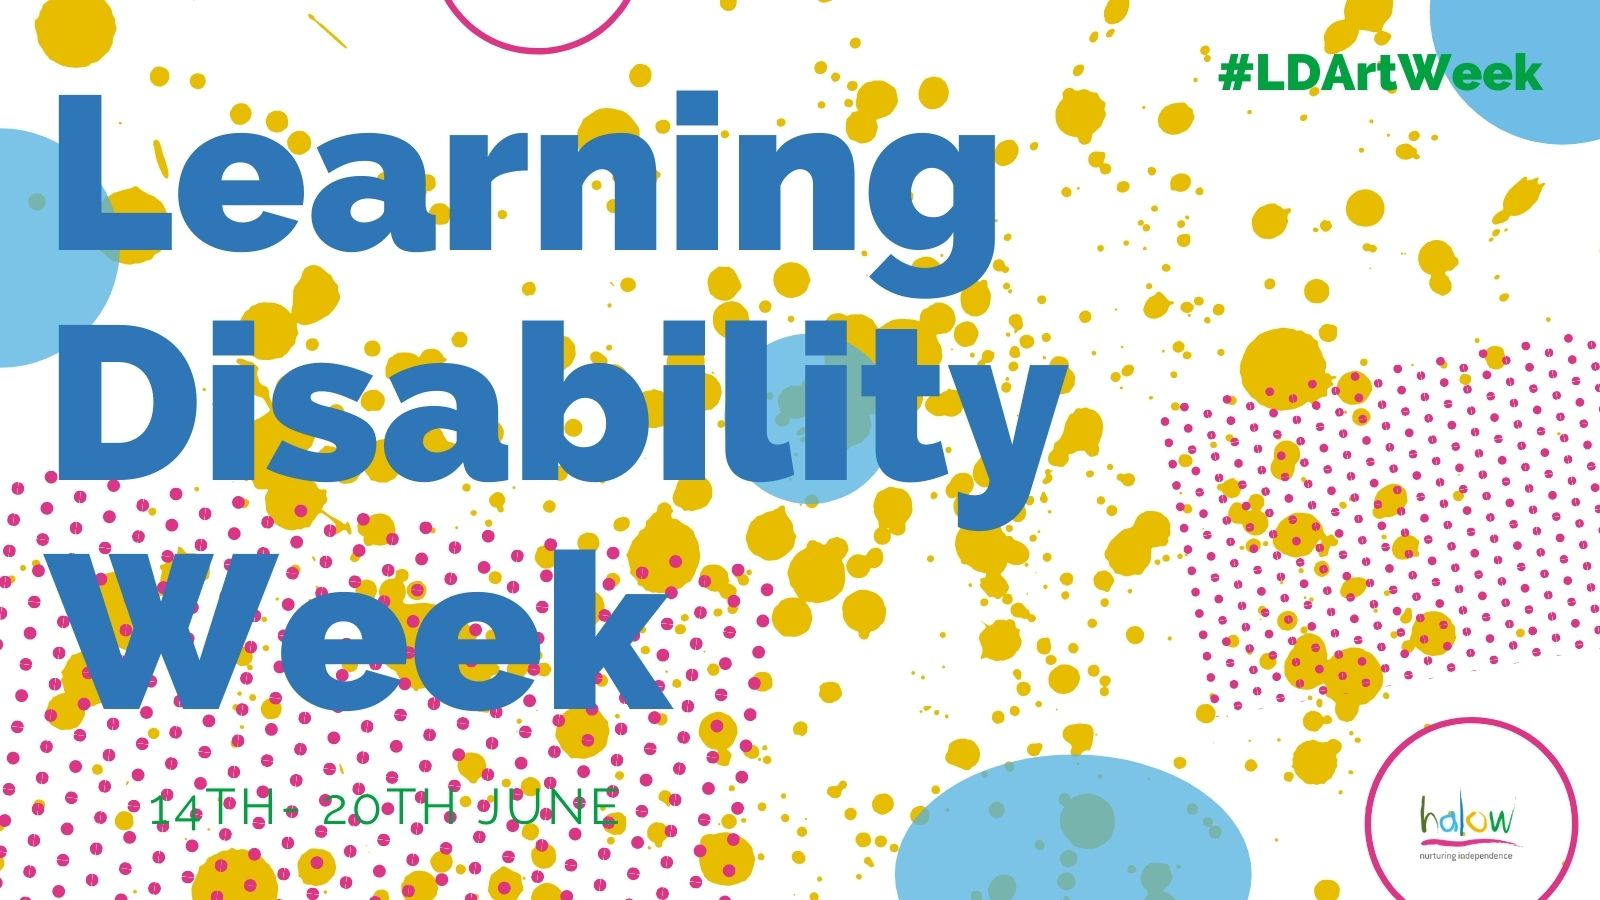 Learning Disability Week: A message from helene